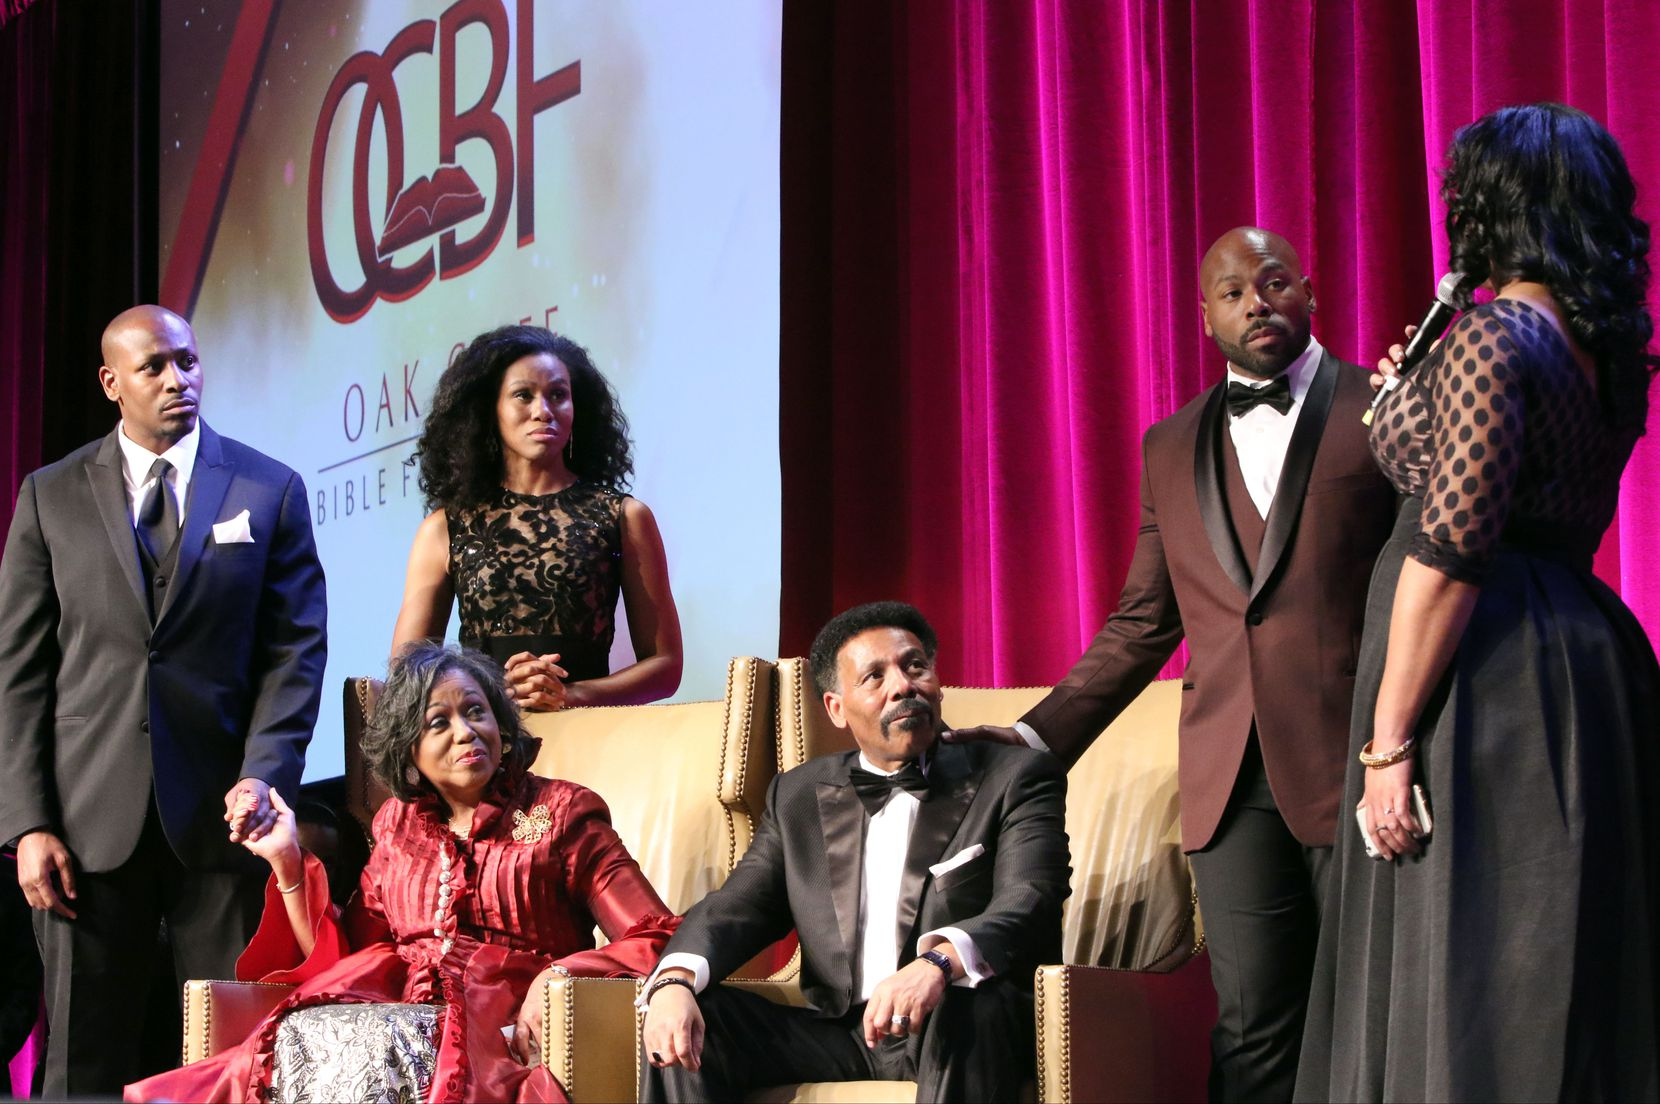 Surrounded by children Jonathan Evans (left),  Priscilla Shirer (back center) and Anthony Evans, Lois and Tony Evans listen to their daughter, Chrystal Evans Hurst, talk during OCBF's 40th Anniversary Gala in 2016.